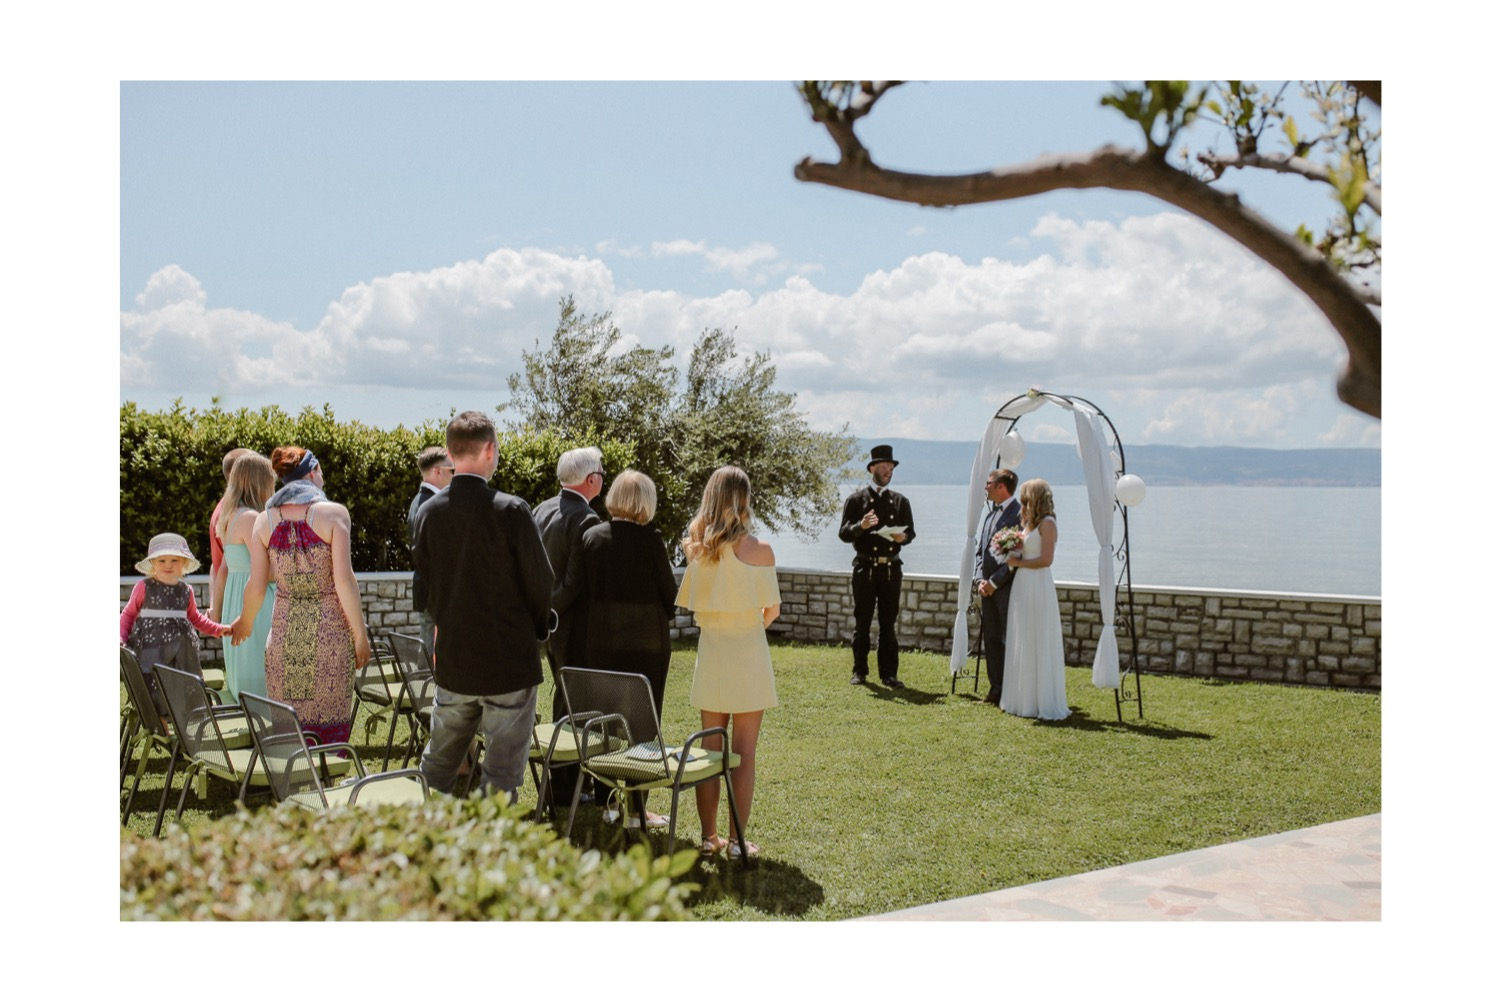 Croatia beach elopement hilke thomas love and ventures photography 18 | Croatia Elopement Photographer and Videographer